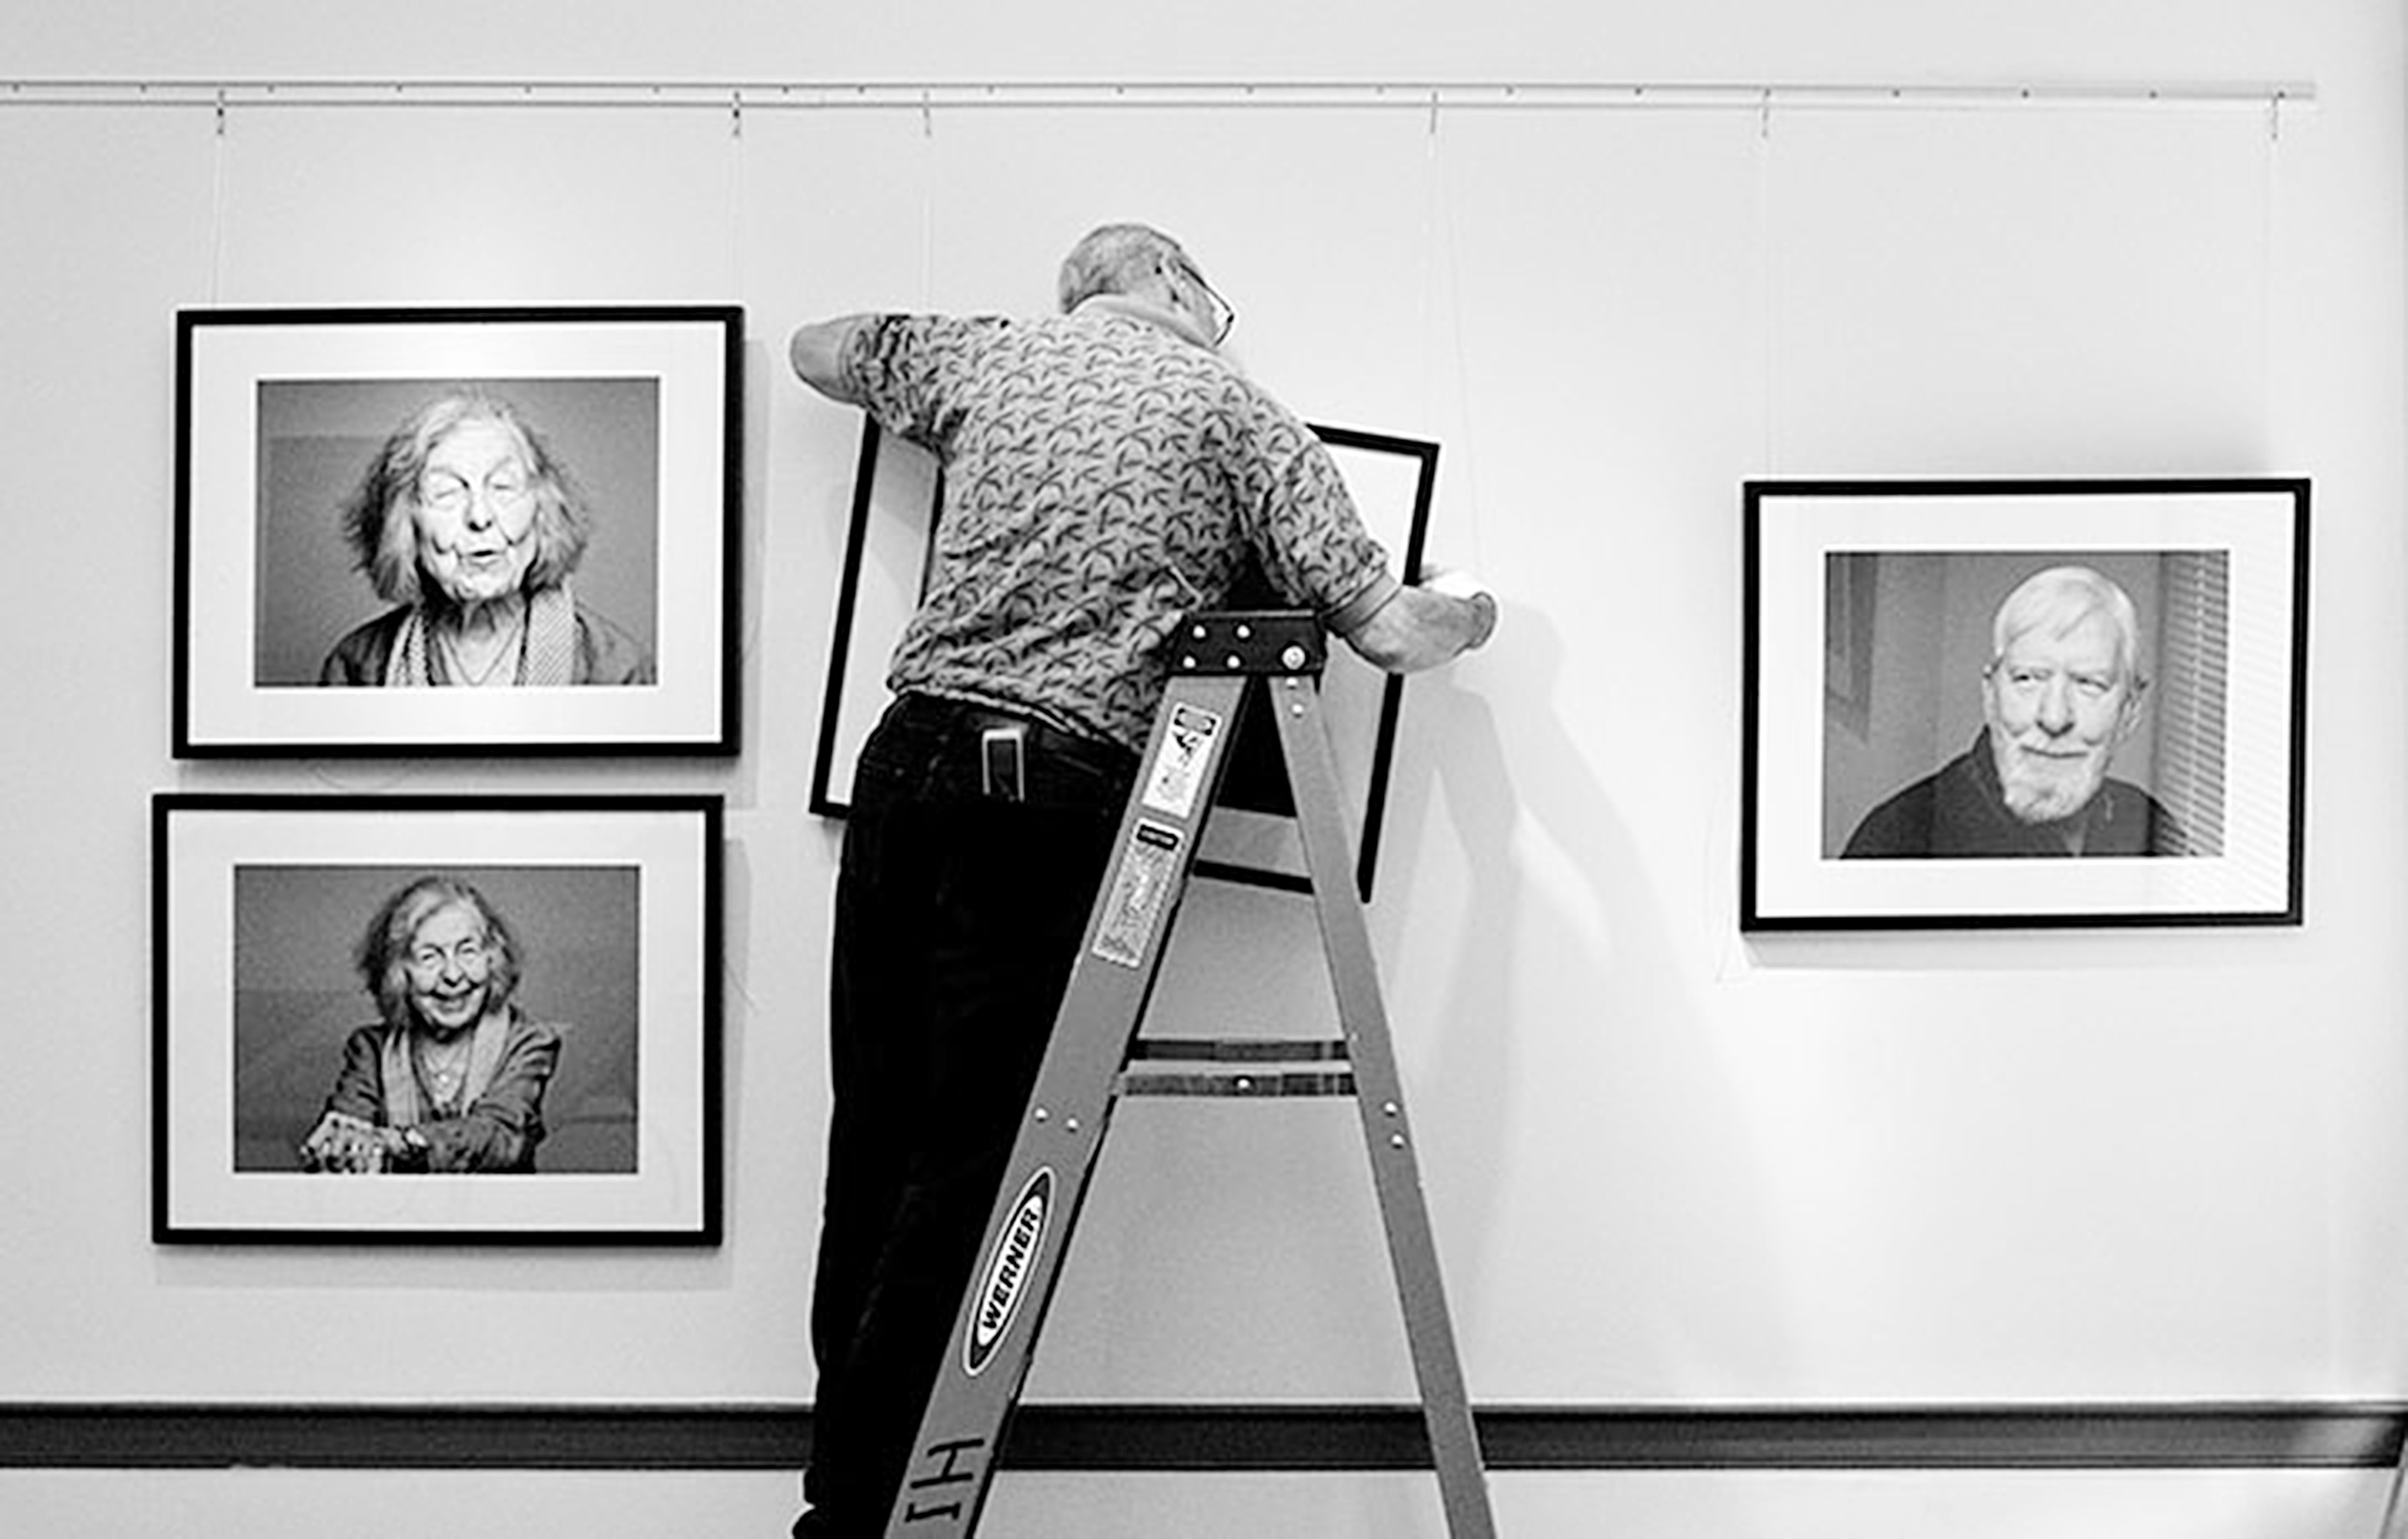 Bob Hooker, our Vision & Voice exhibit installer, hangs portraits in the main gallery.